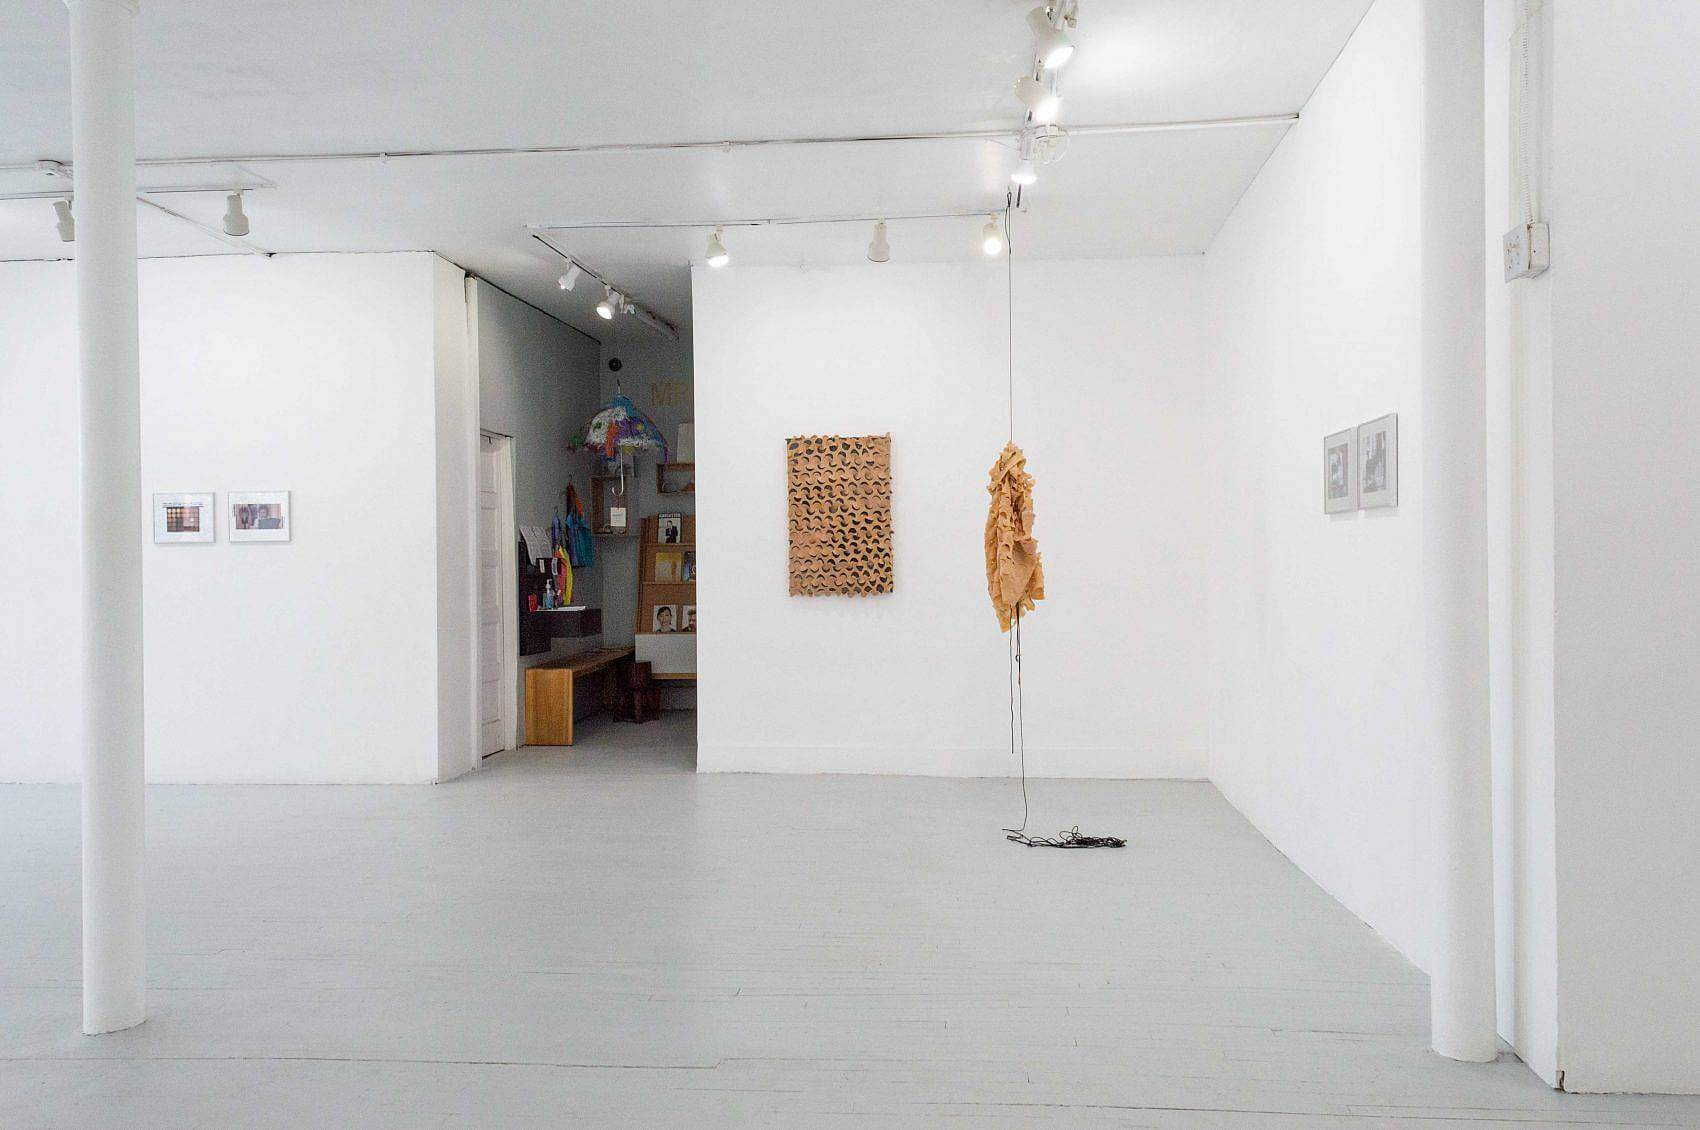 This is an installation shot of the exhibition with the entryway to the left and Zach Ingram's